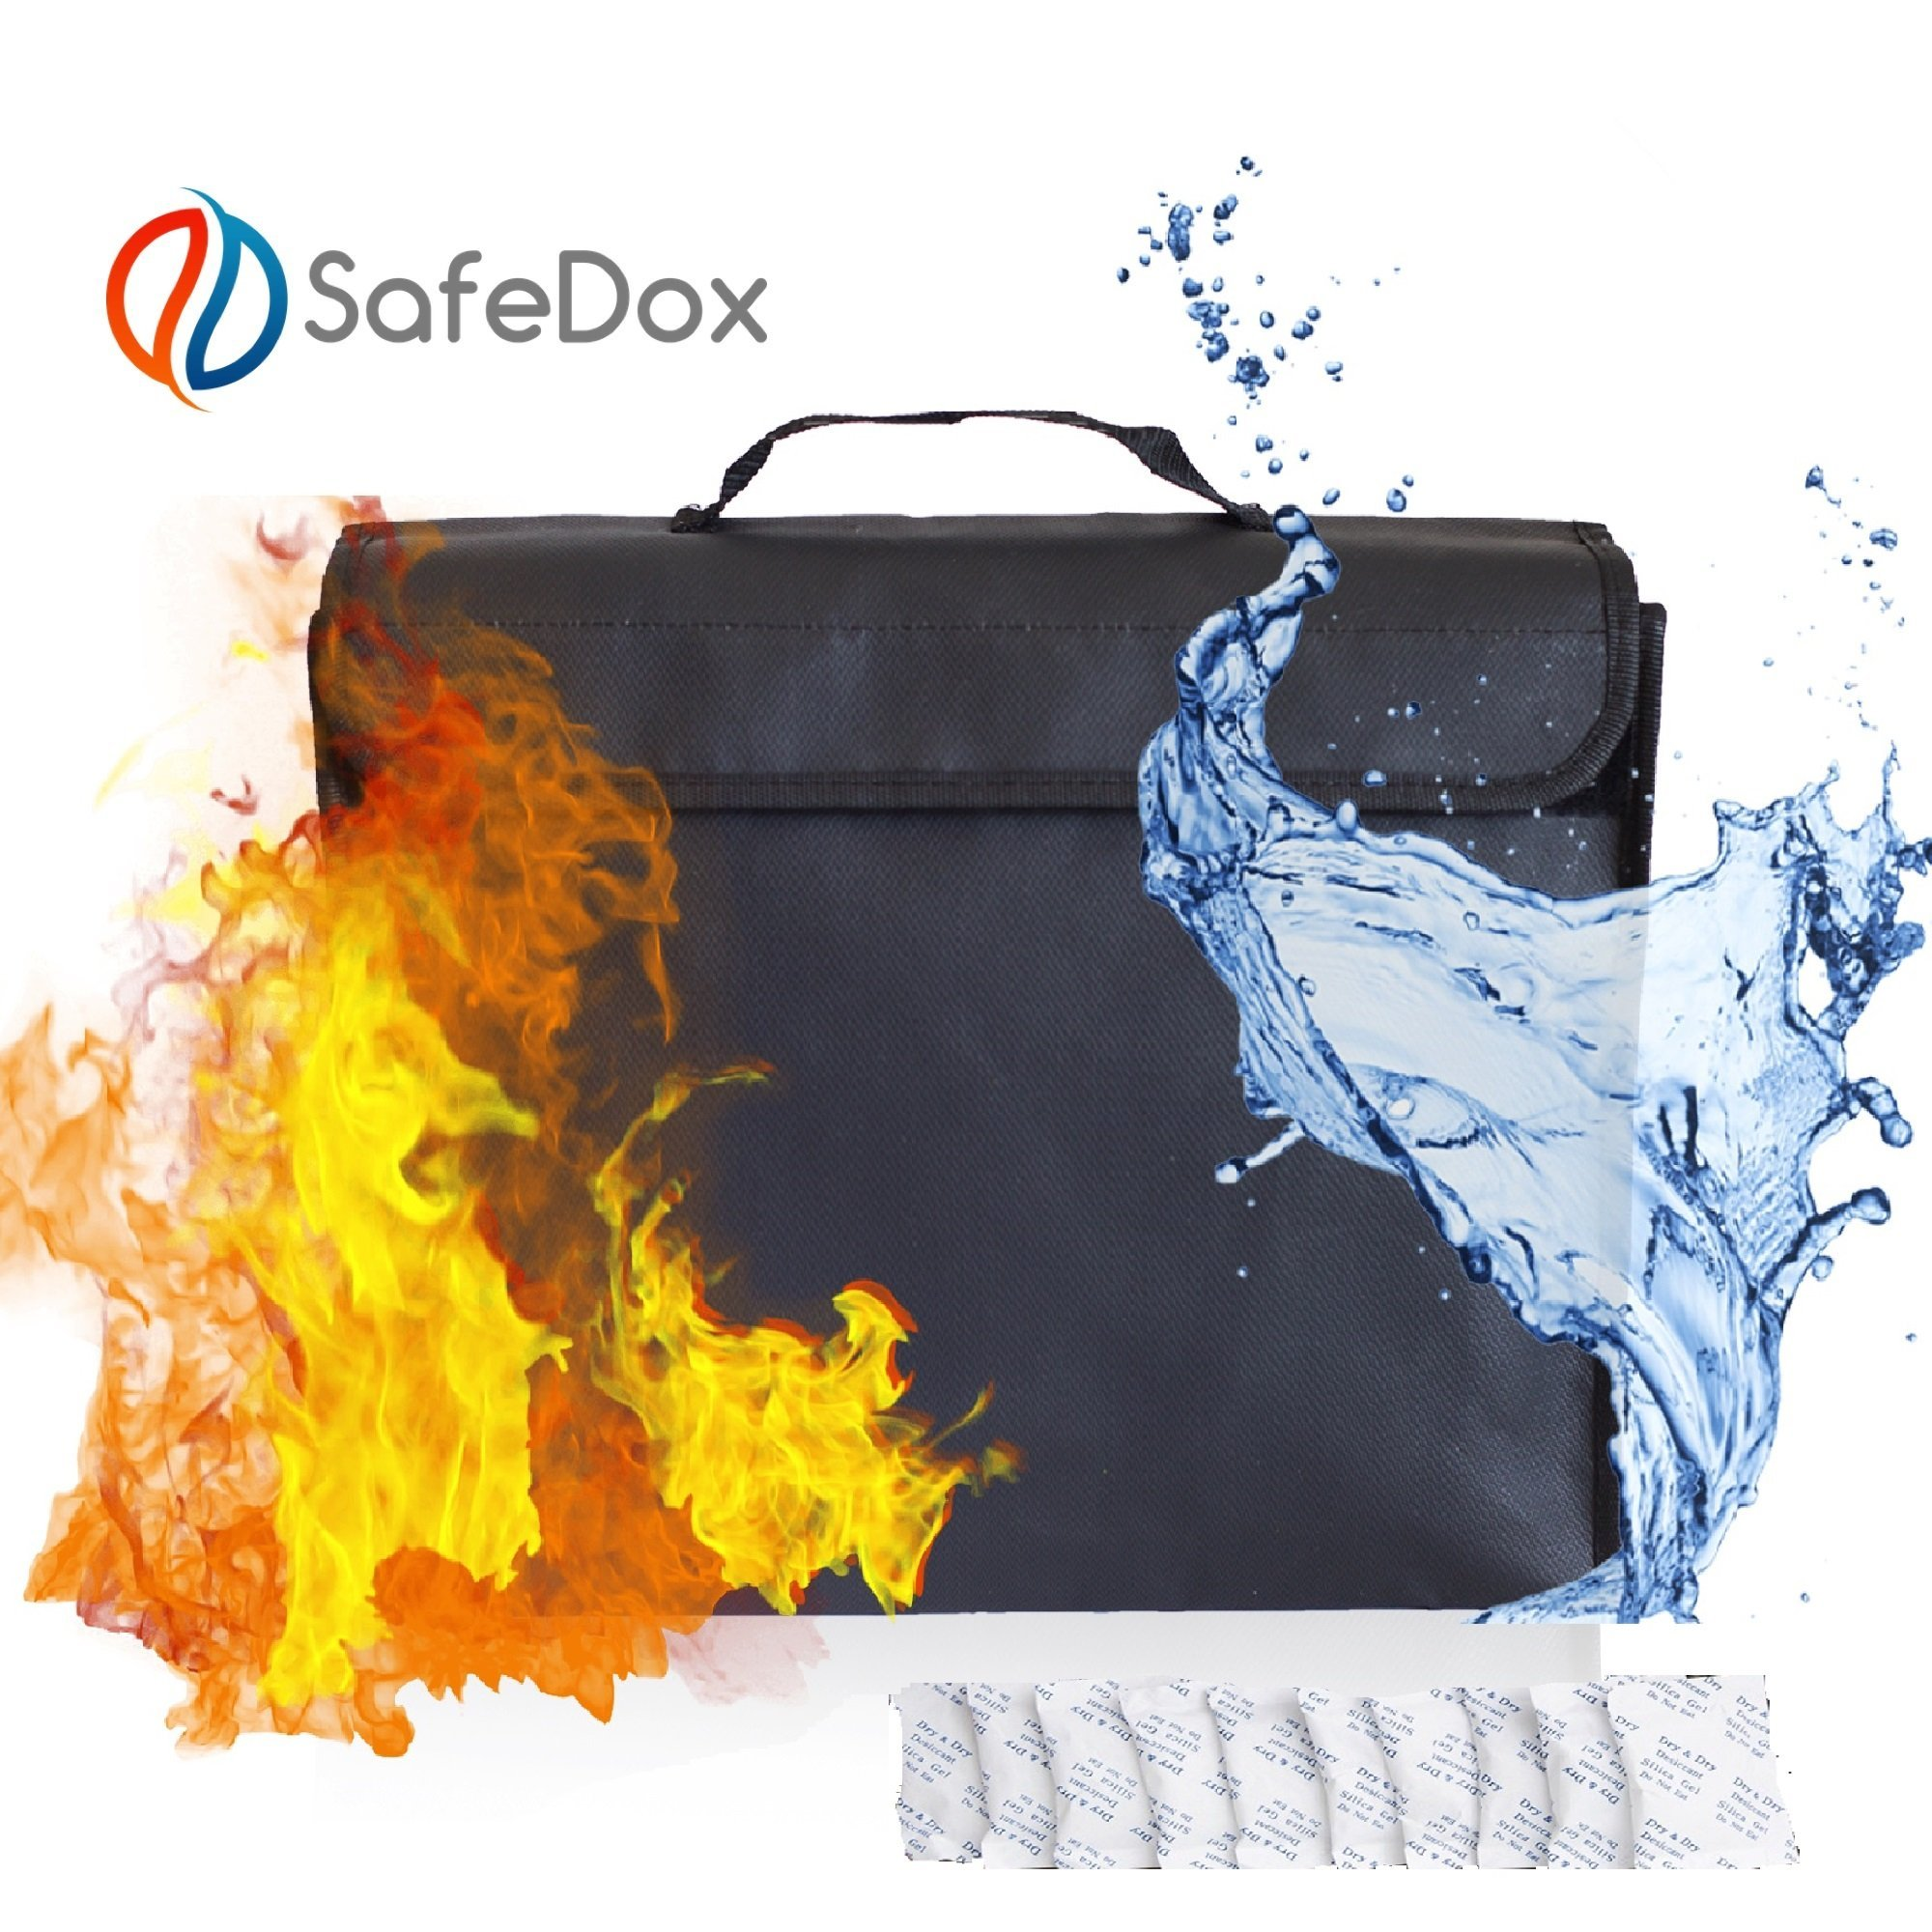 Large Fireproof Document and Money Bag w/10 Desiccant Packets; Fire and Water Resistant File Pouch w/Handle. Safe Storage Organizer for Valuables and Important Documents